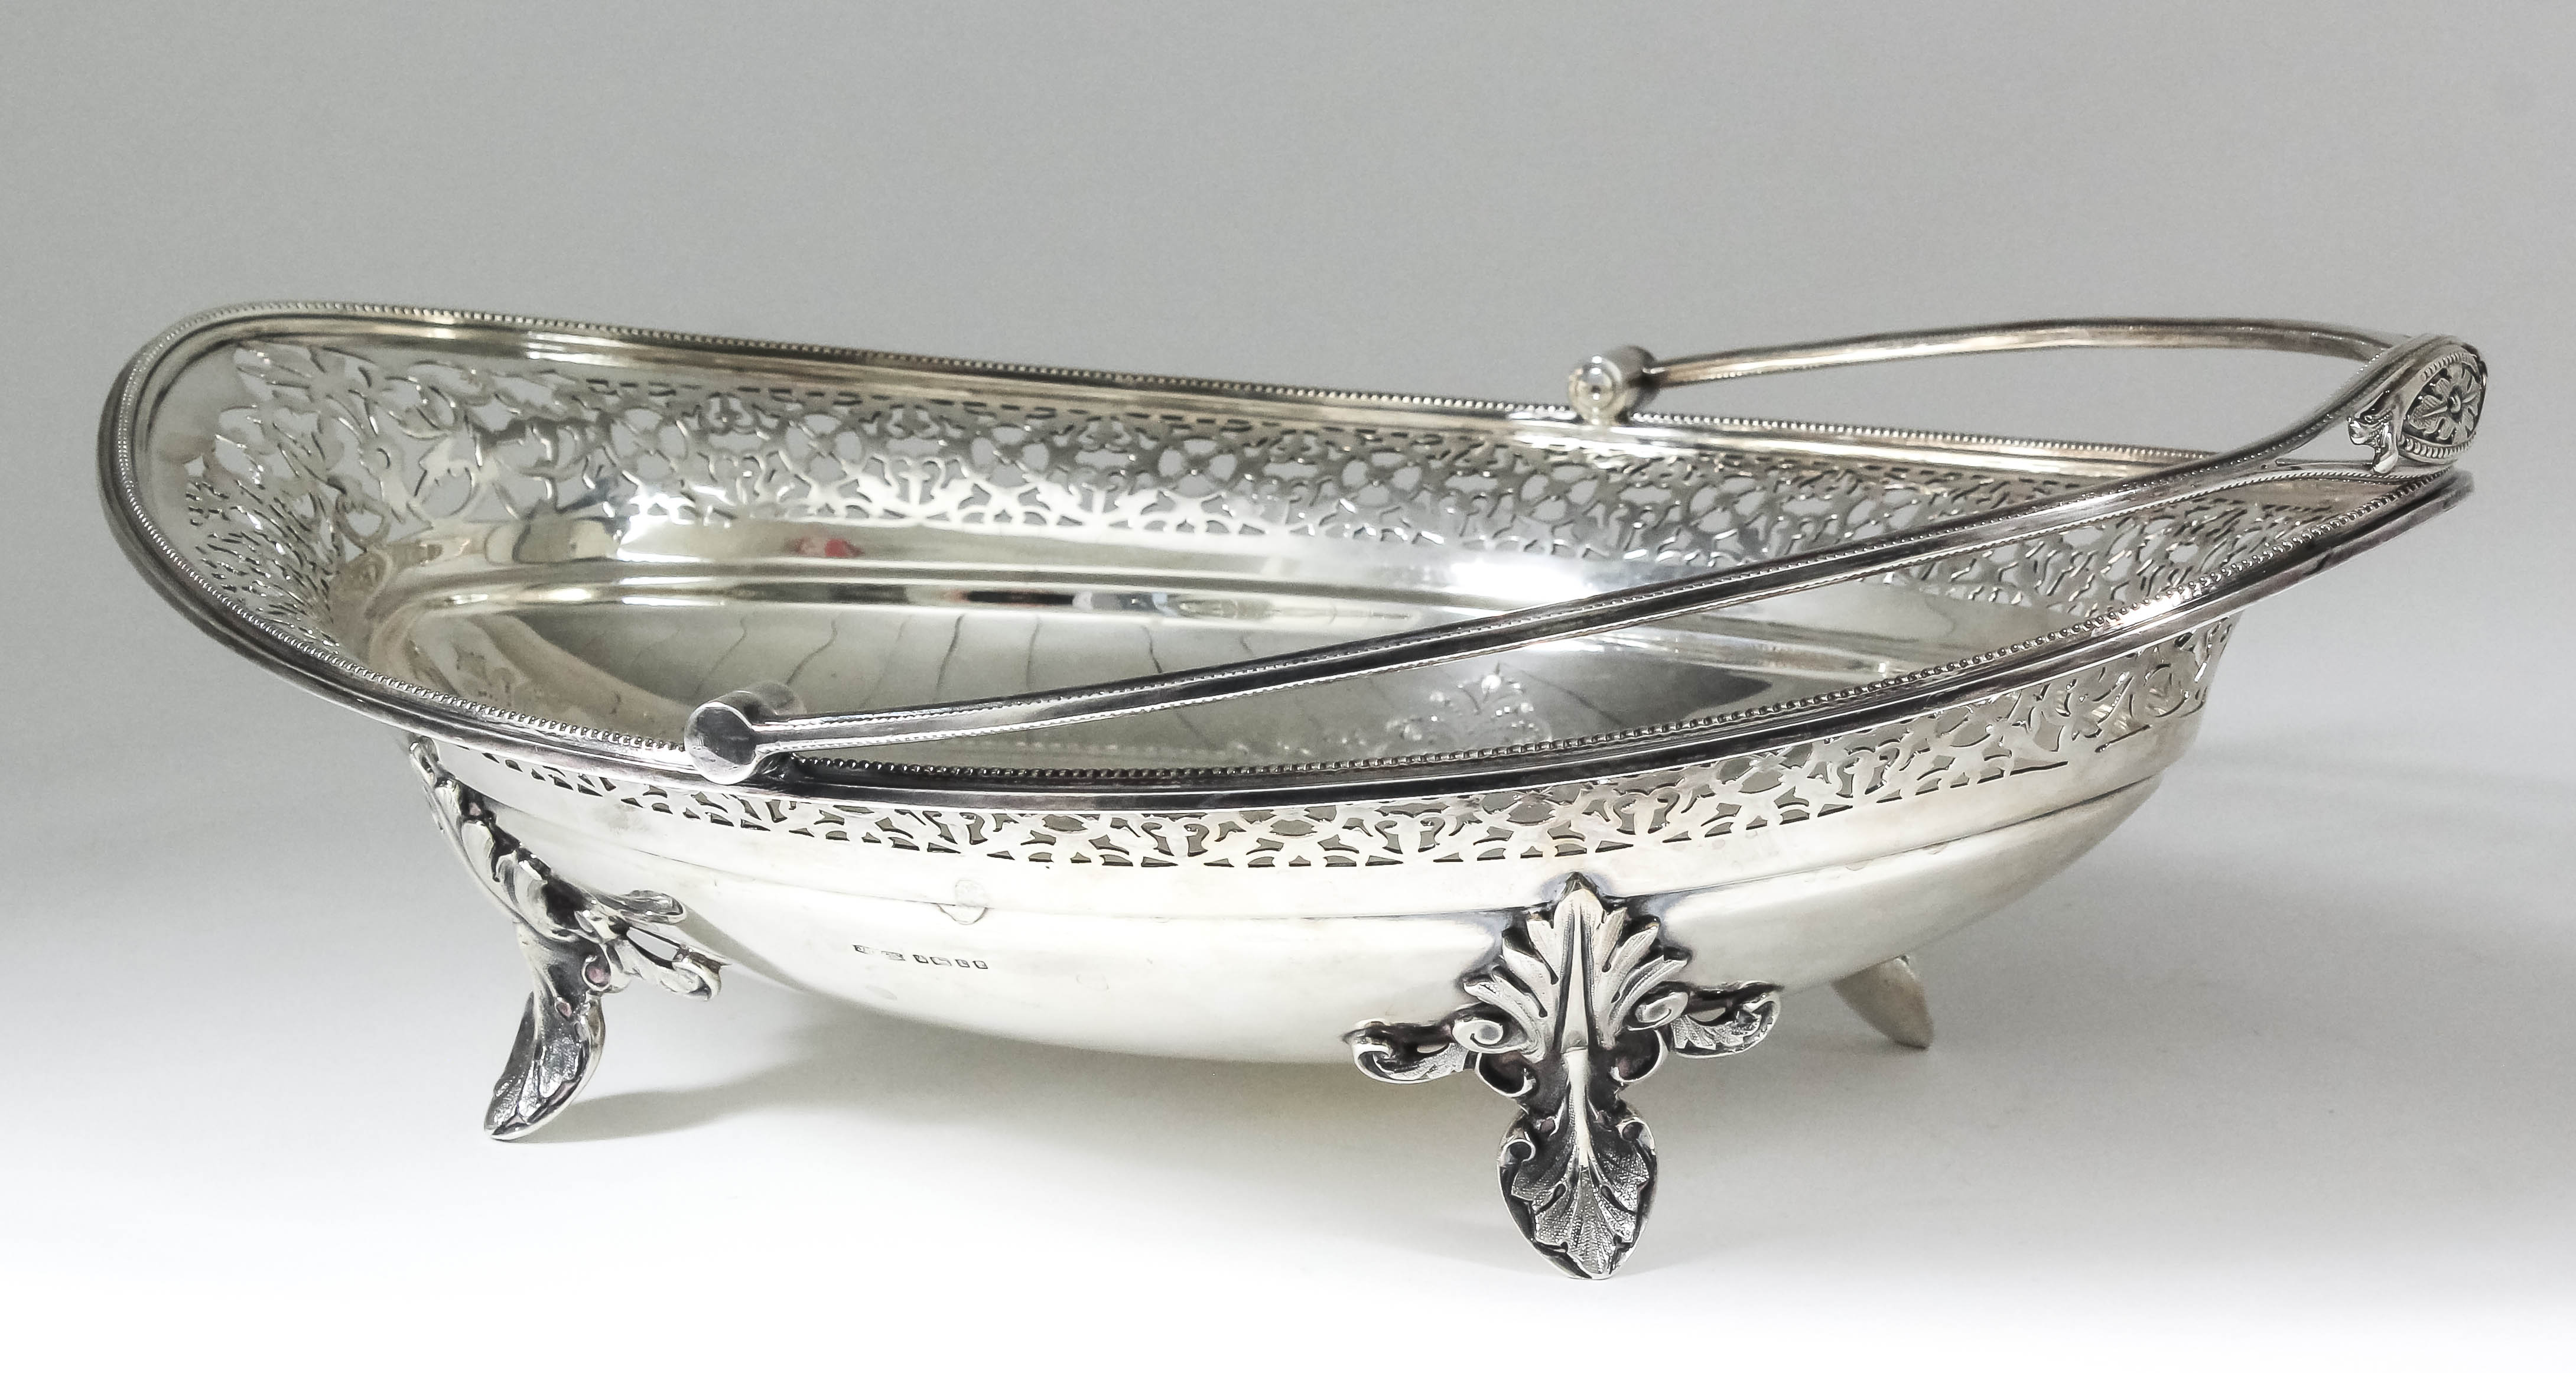 Lot 22 - A good Victorian silver ovoid cake basket, the pierced rim with engraved banding to centre and